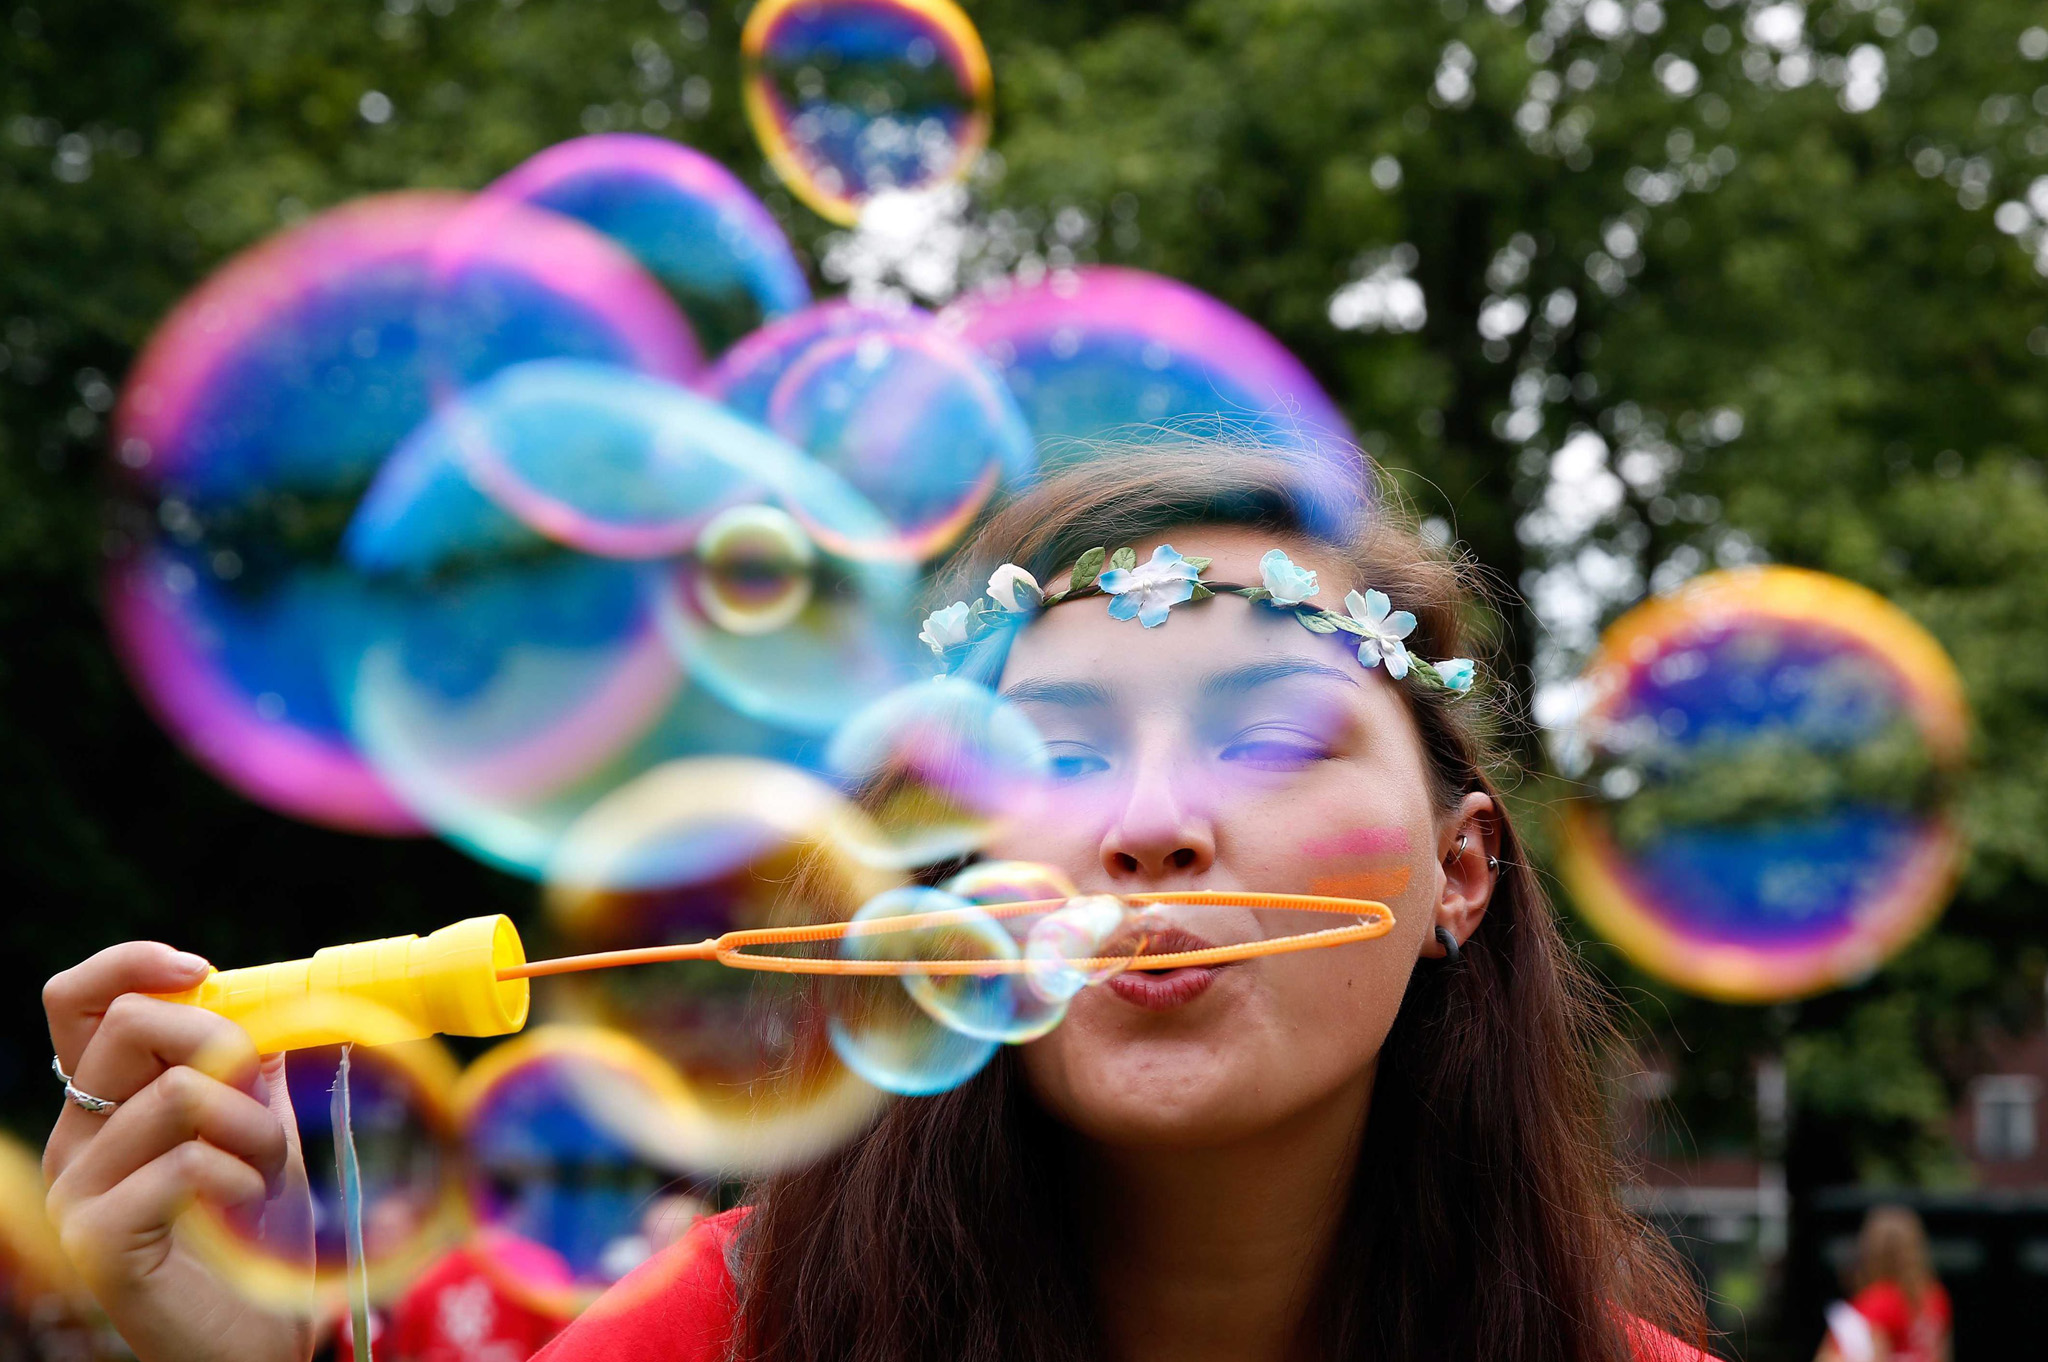 A student blows bubbles on the first day of the university introduction days for students in the Wilhelminapark in Utrecht, the Netherlands.